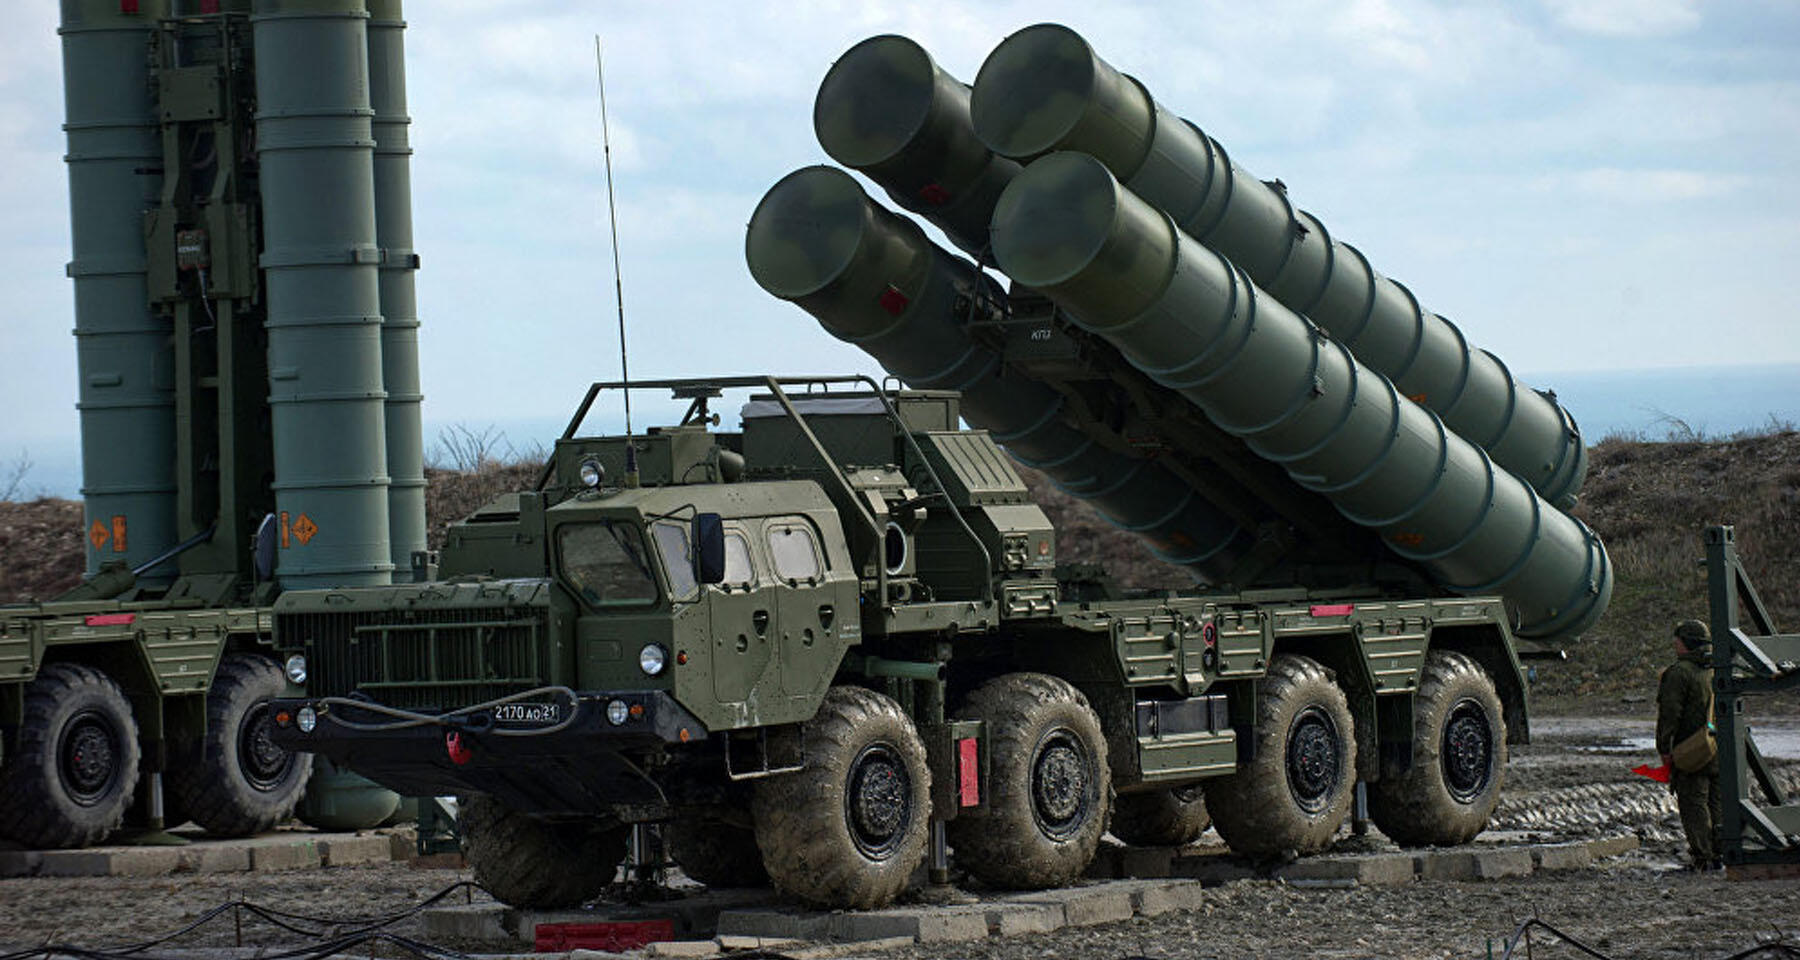 Indian Military Set to Train to Operate Russia's S-400s Despite US Sanctions Threat